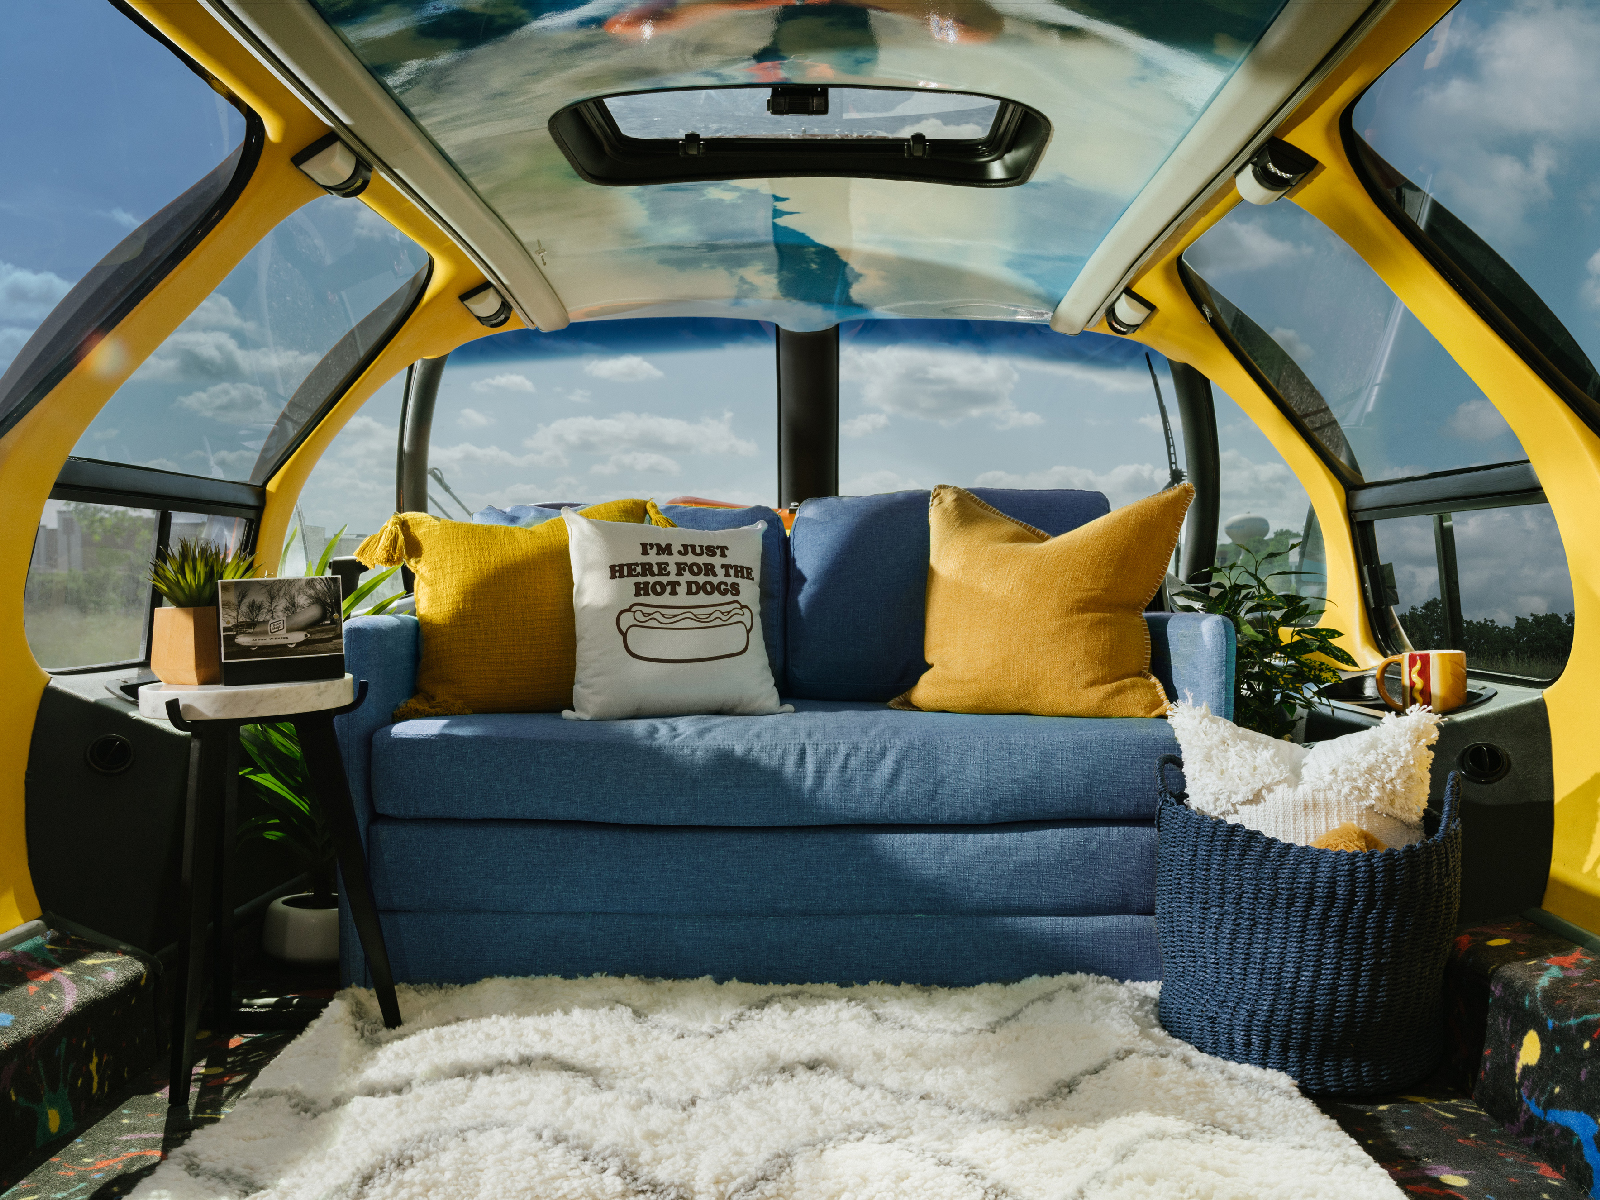 wienermobile-airbnb-2-FT-BLOG0719.jpg